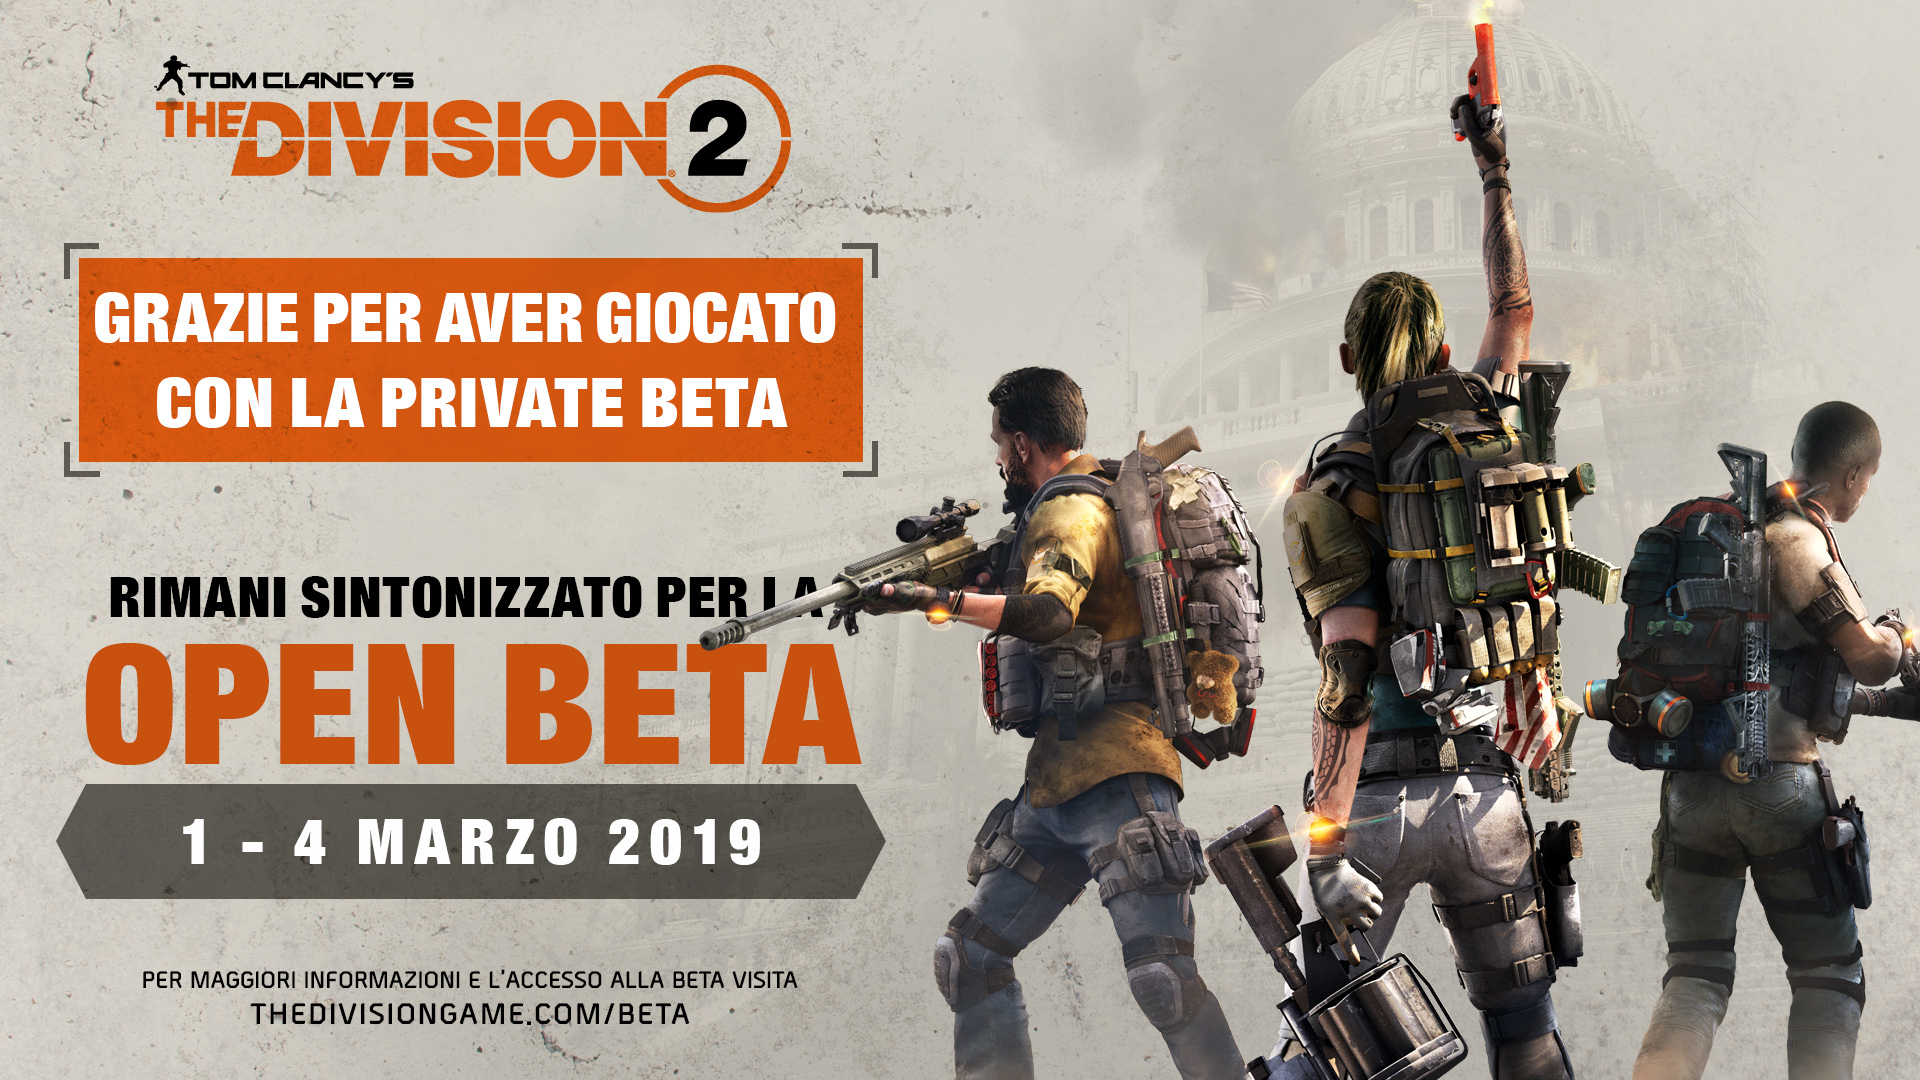 Open Beta di Tom Clancy's The Division 2